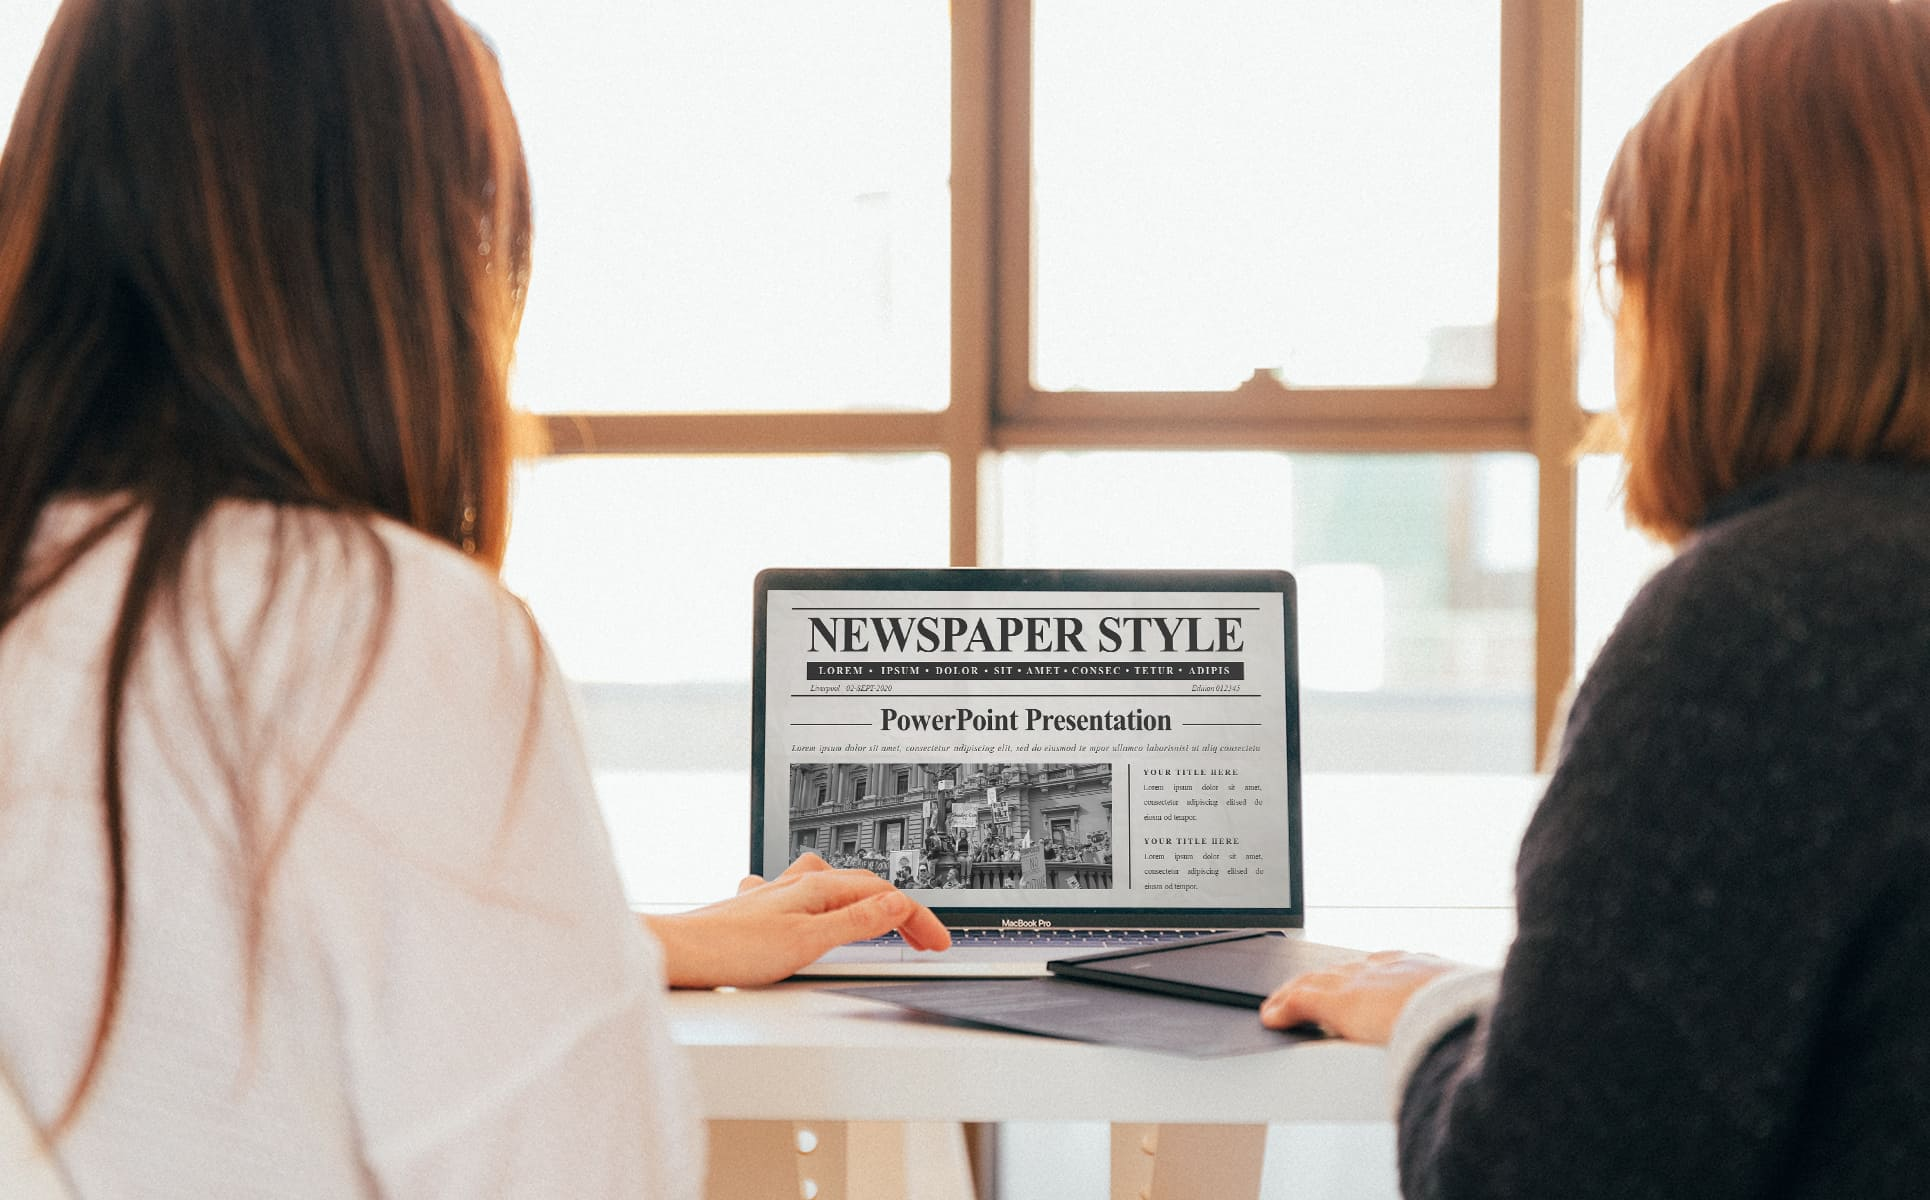 Two women are watching the Newspaper PowerPoint presentation.